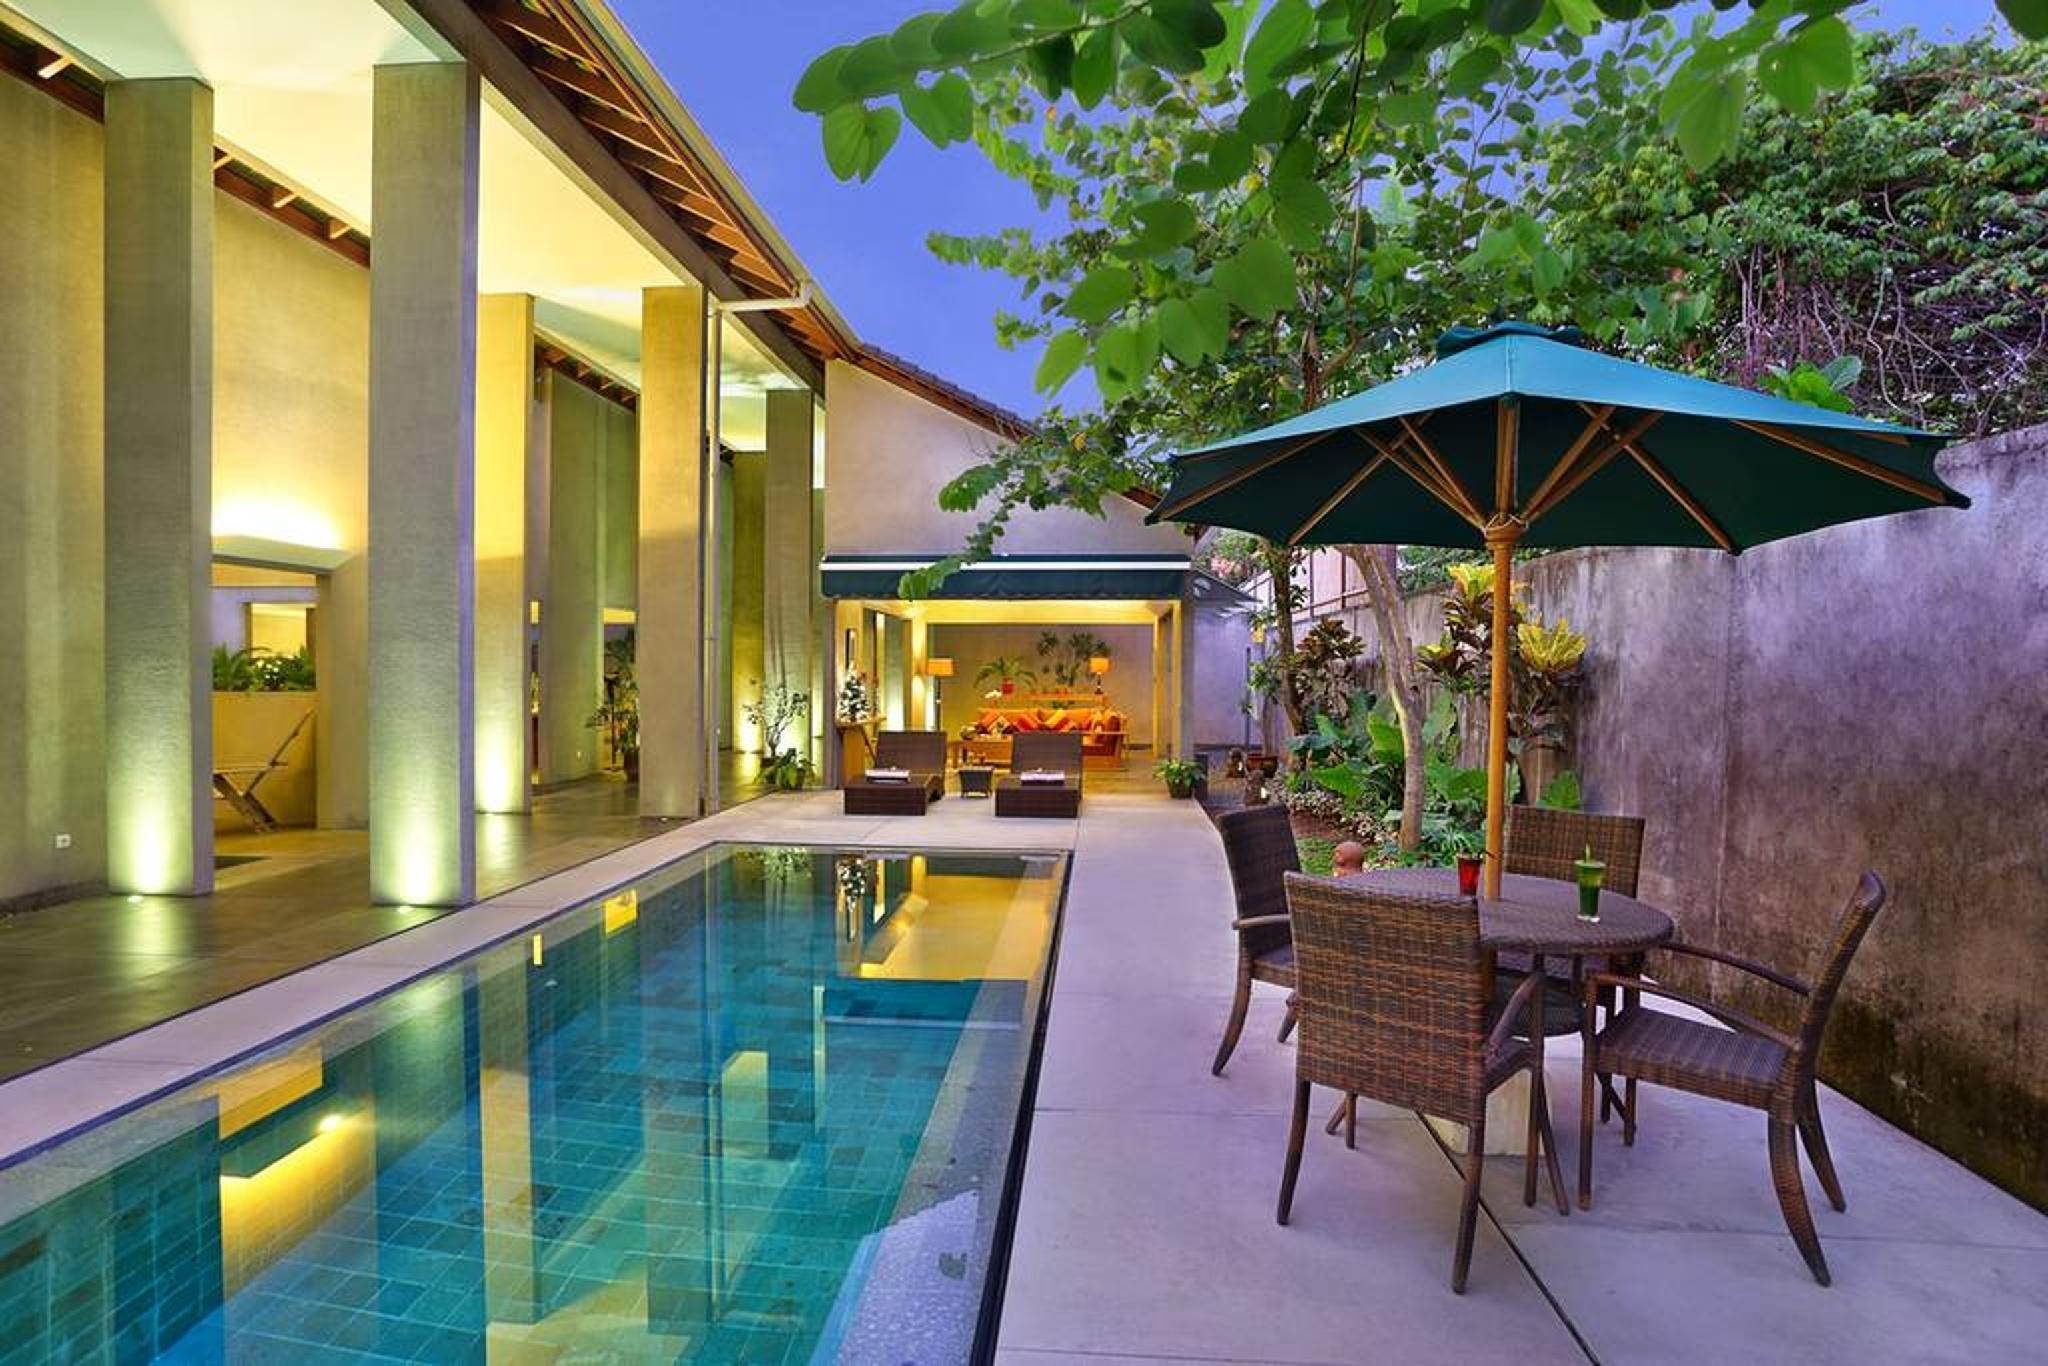 4 Bedroom Villa Maya Loka Seminyak Centre Reviews